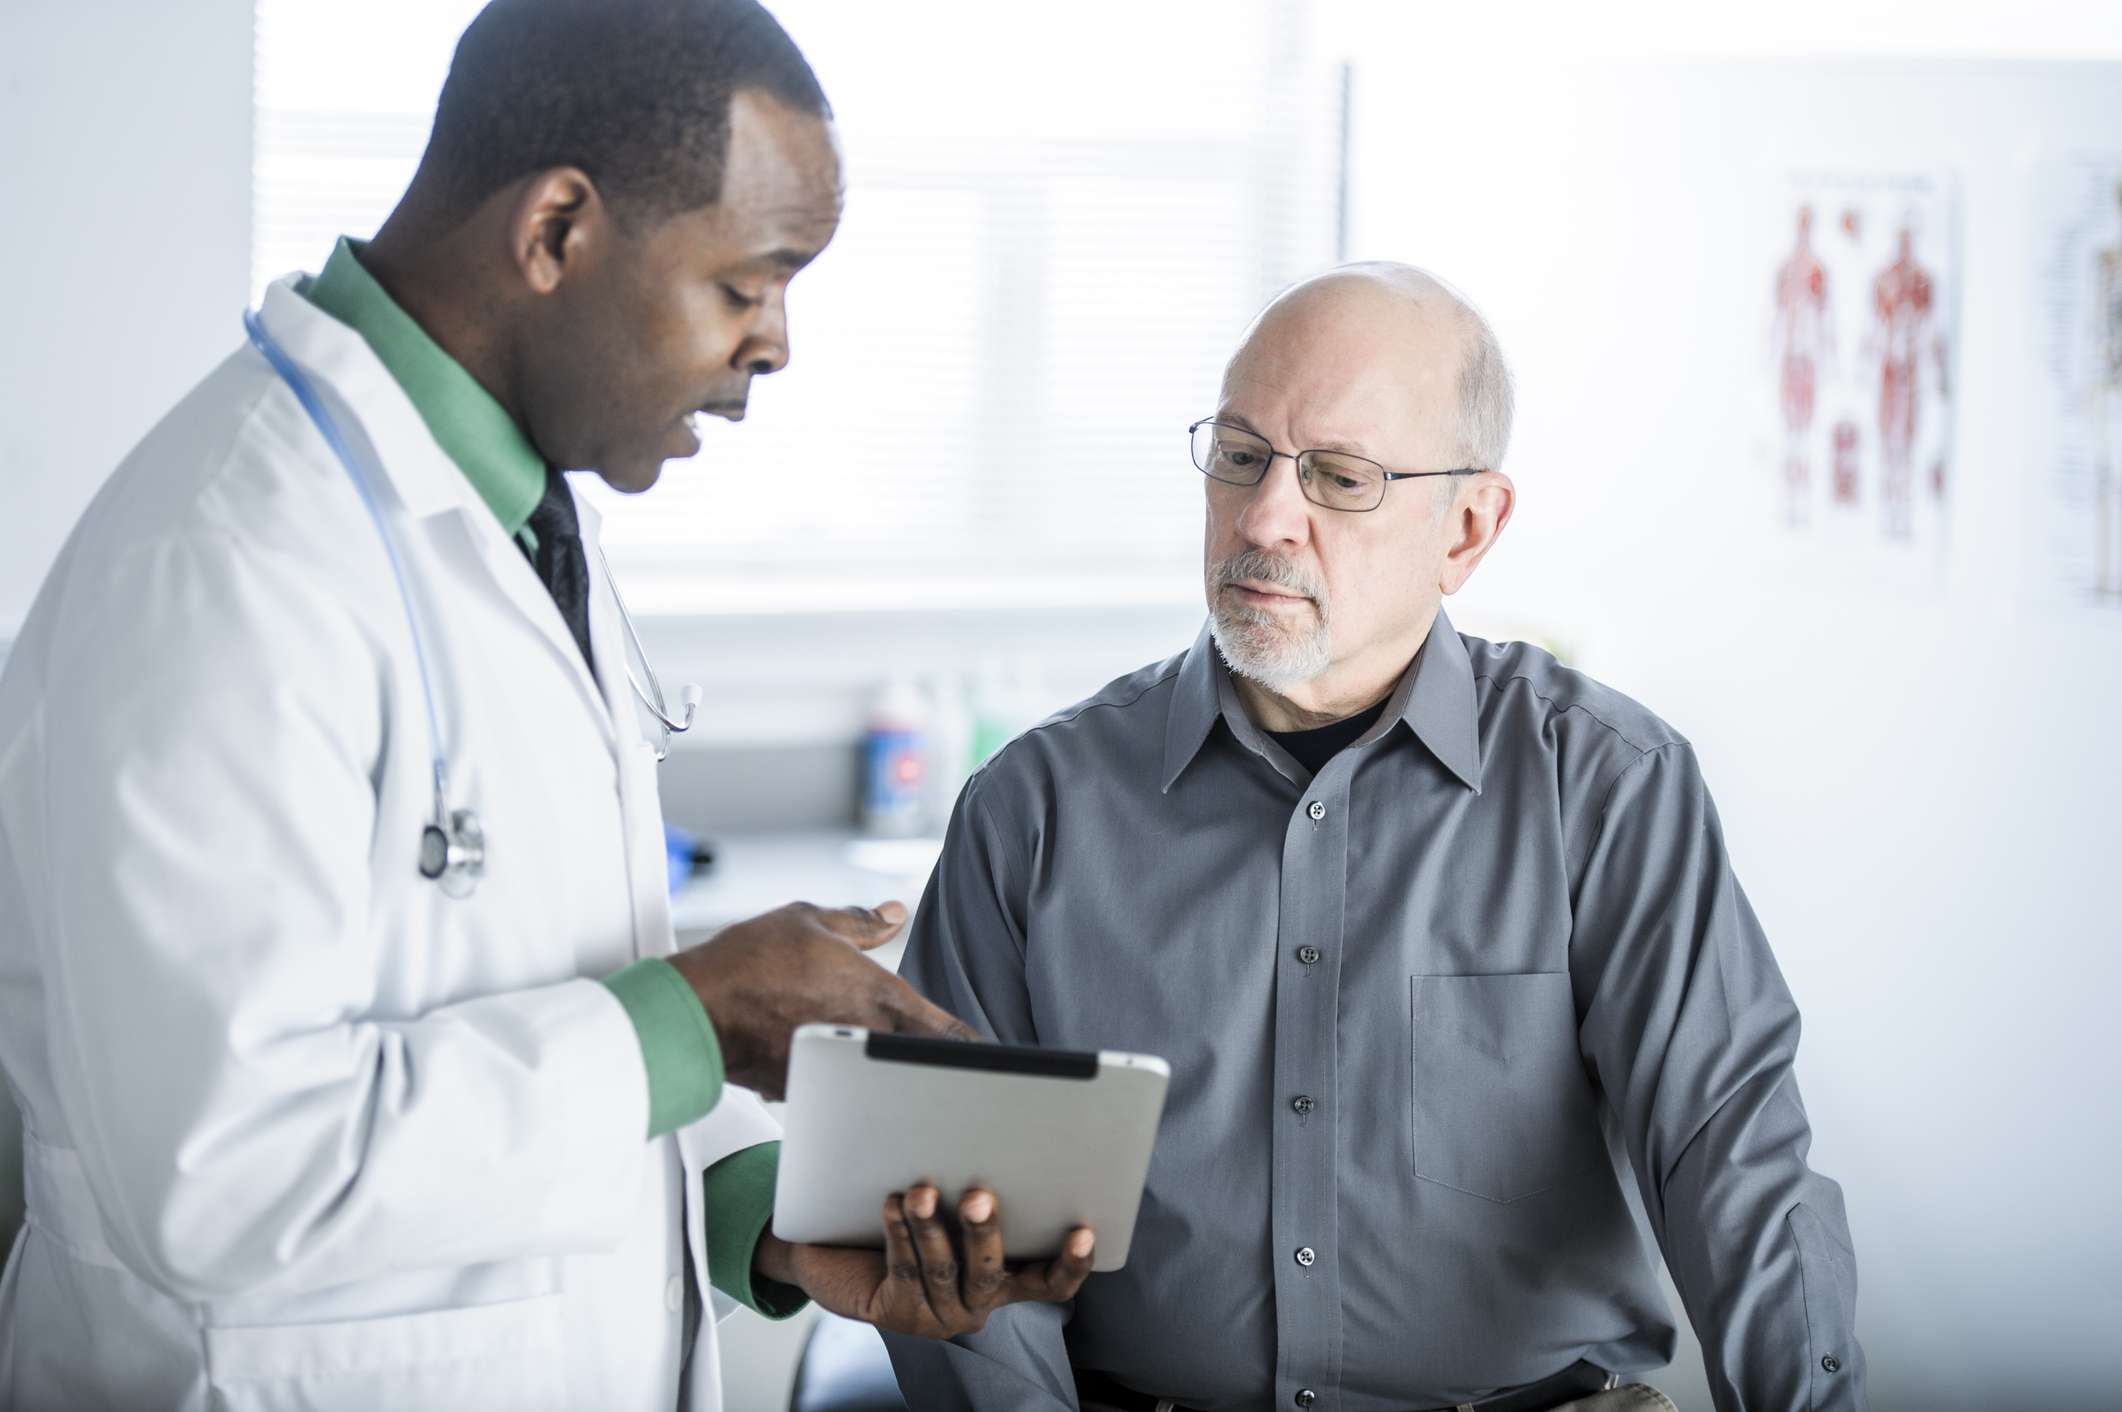 Doctor explaining lab results to patient